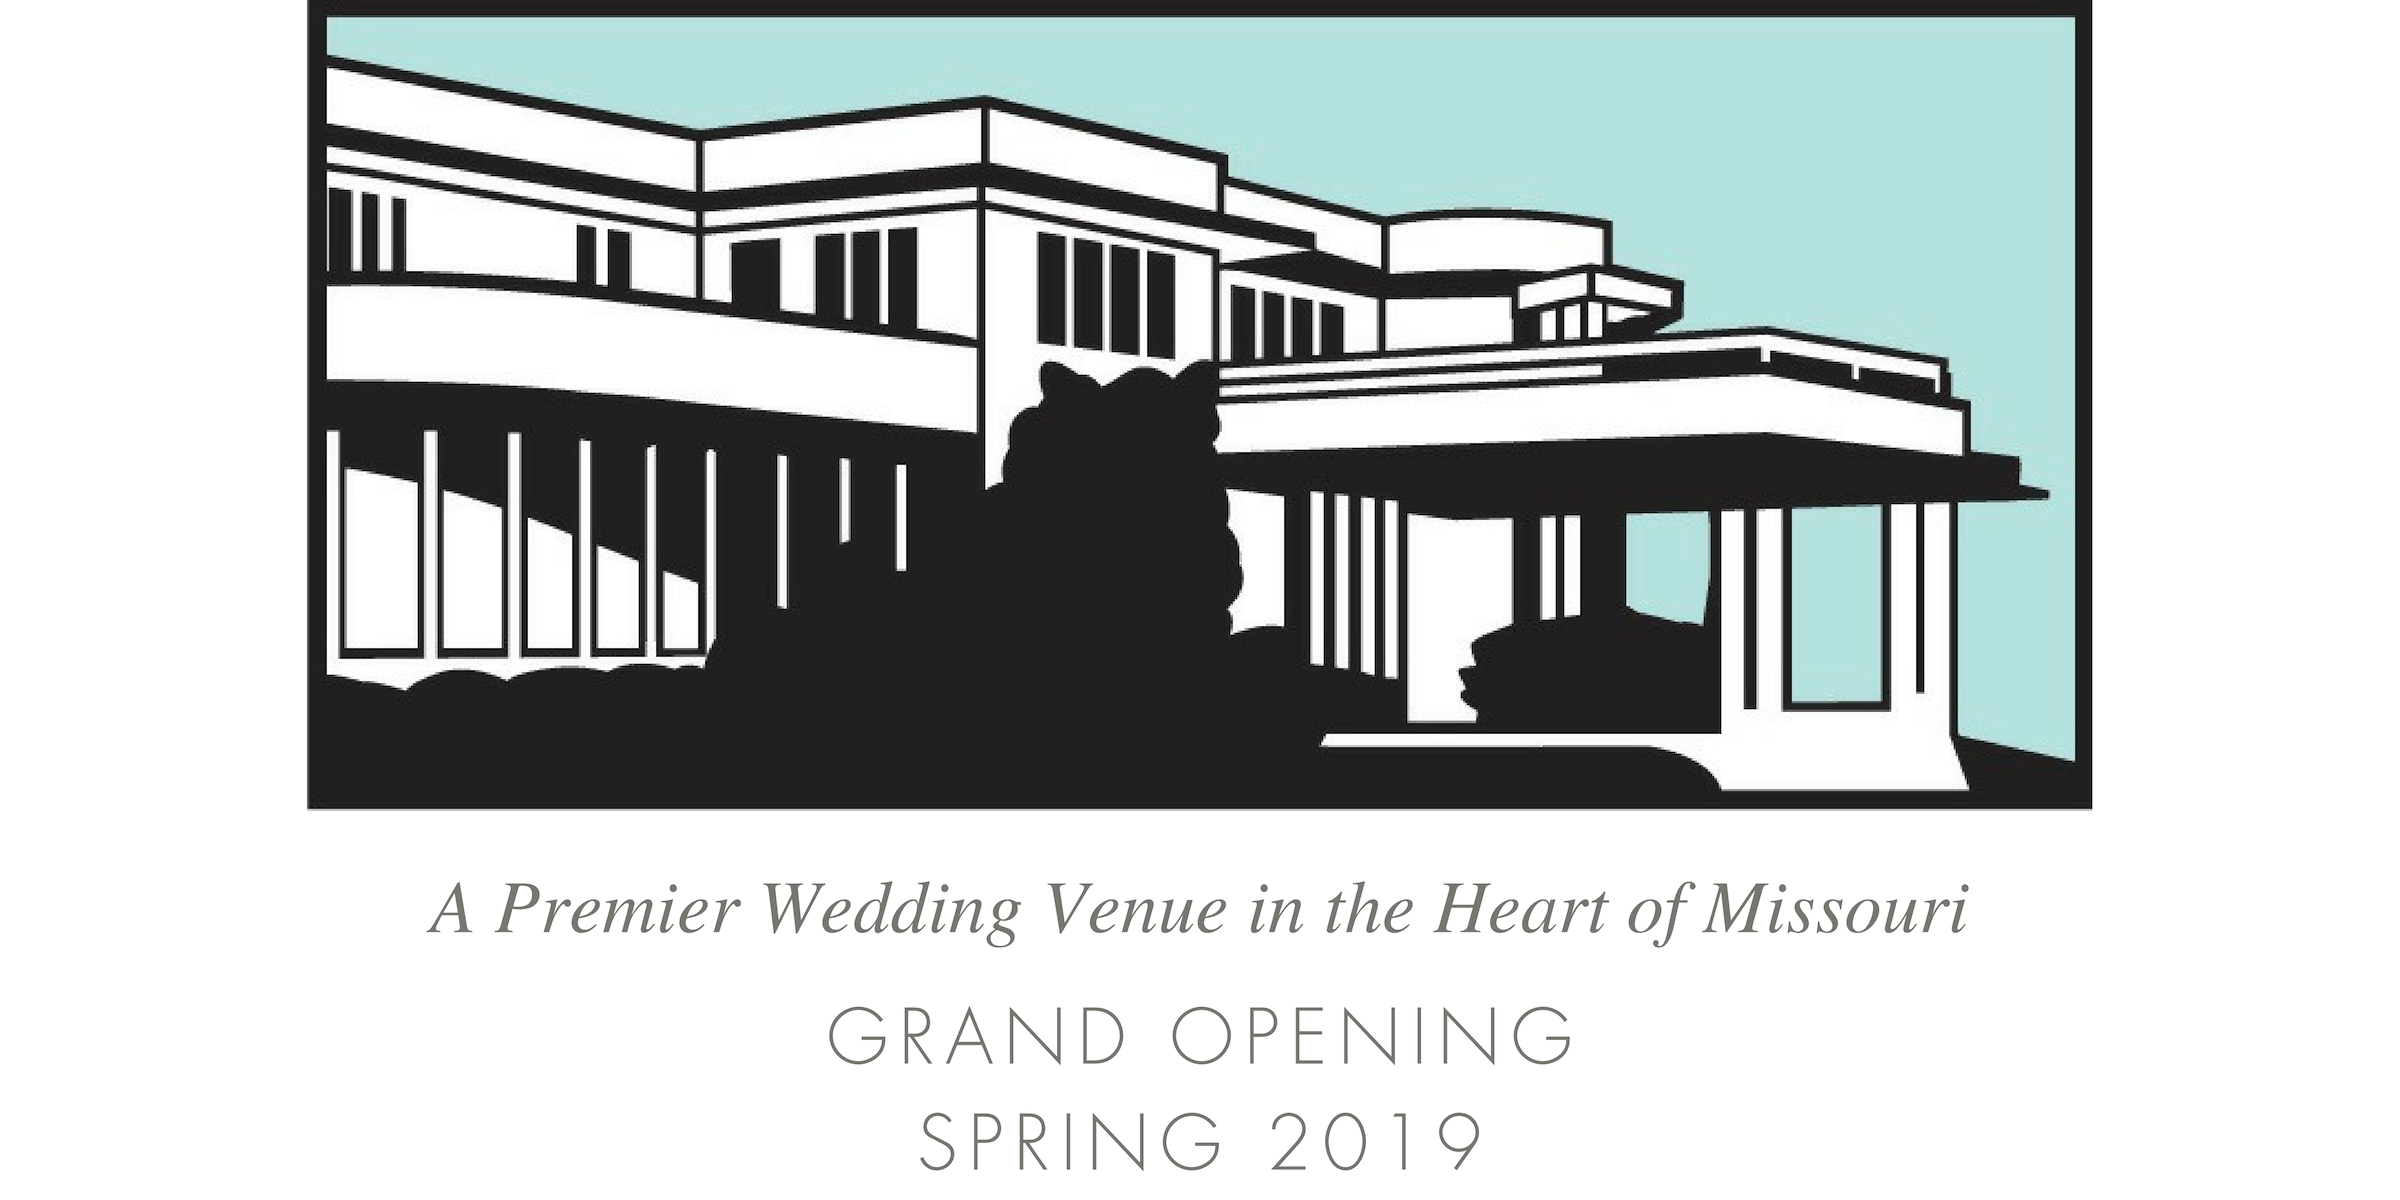 A Premier Wedding Venue in the Heart of Missouri